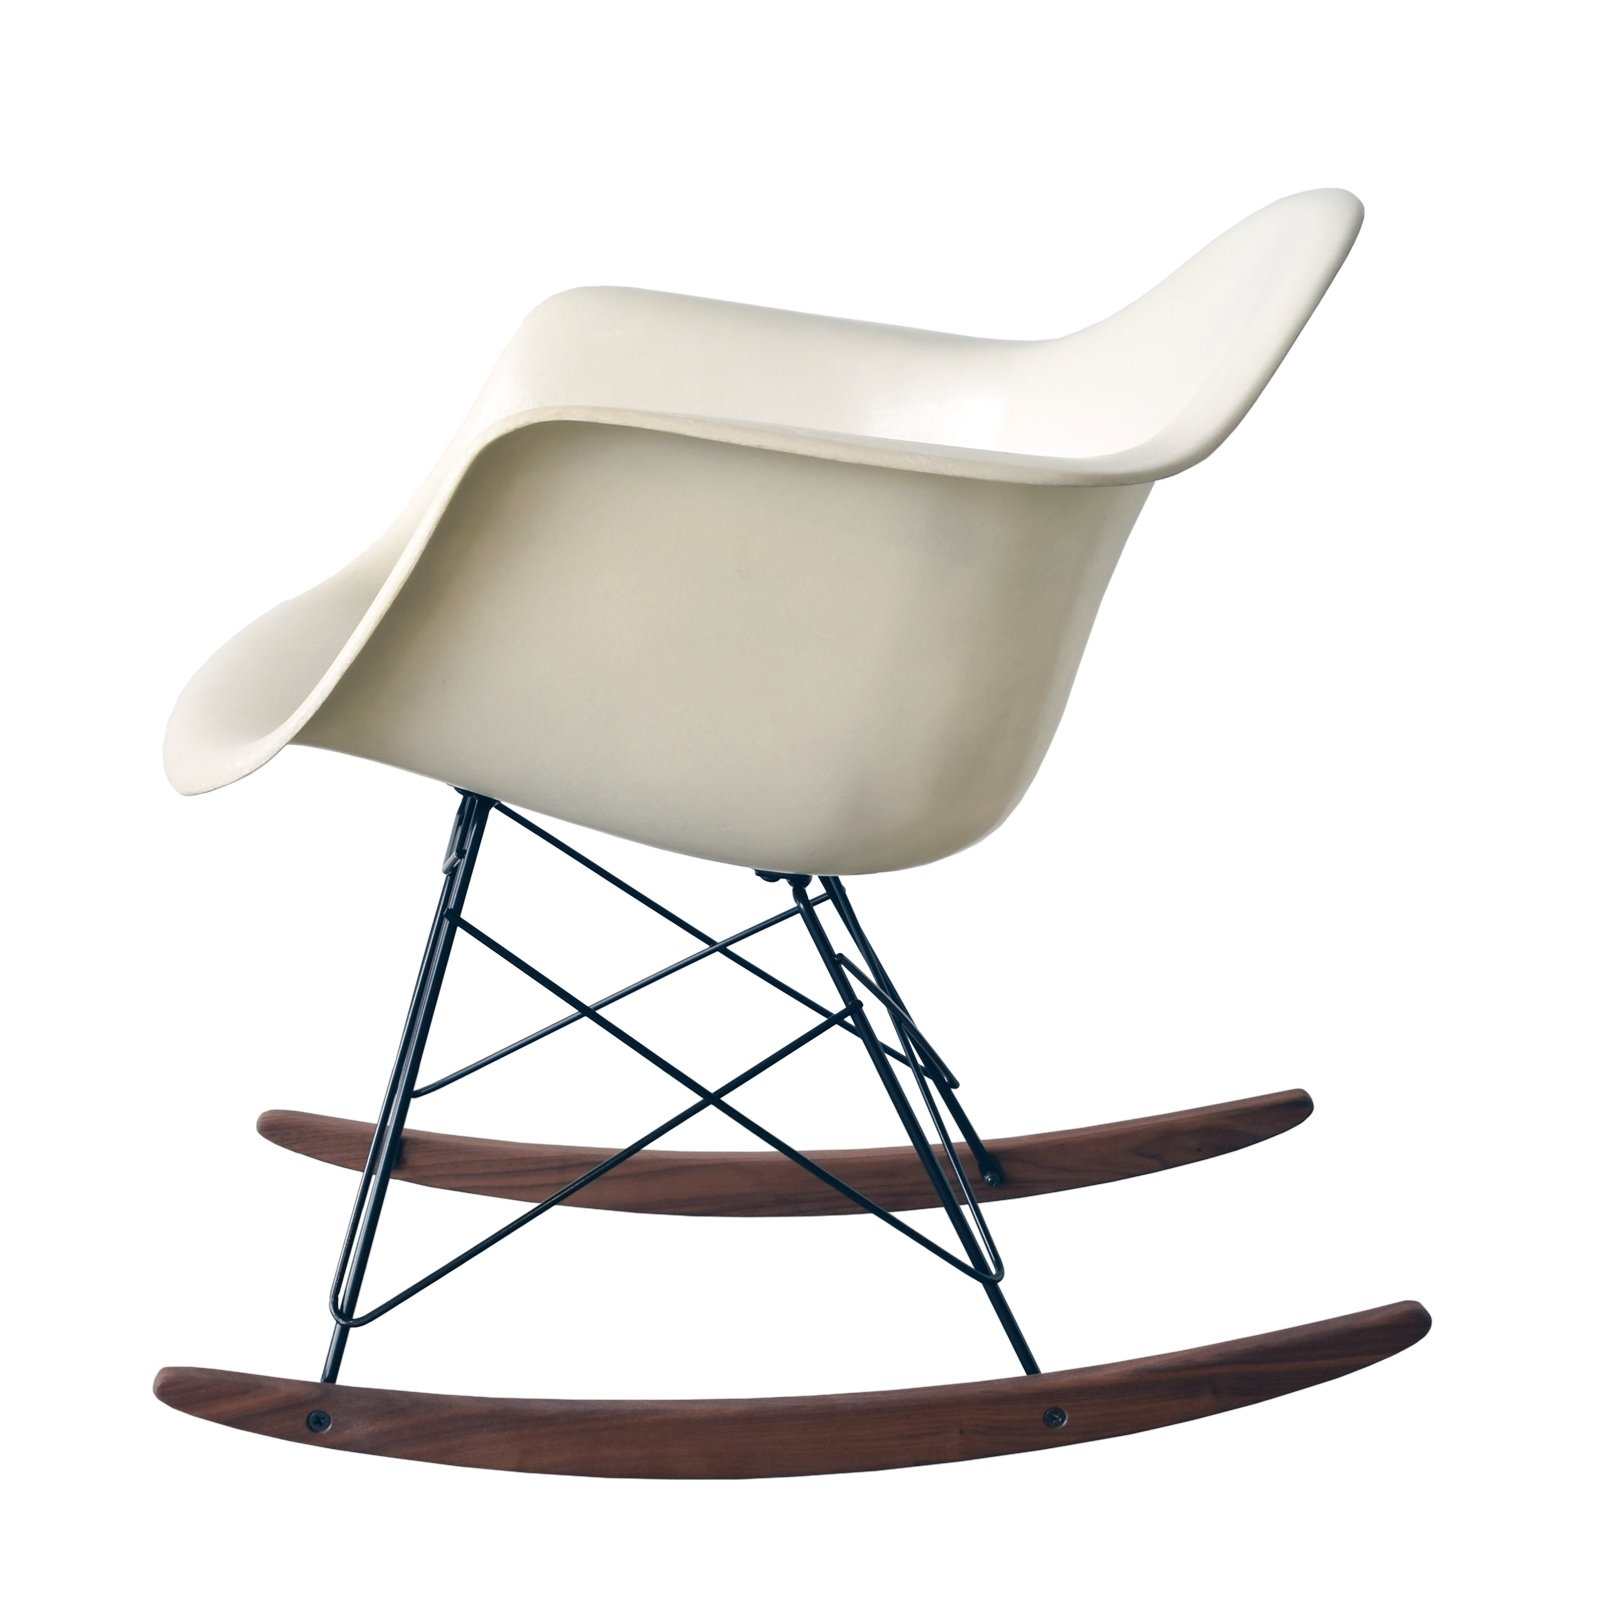 RAR Parchment Rocking Chair By Charles U0026 Ray Eames For Herman Miller, 1960s